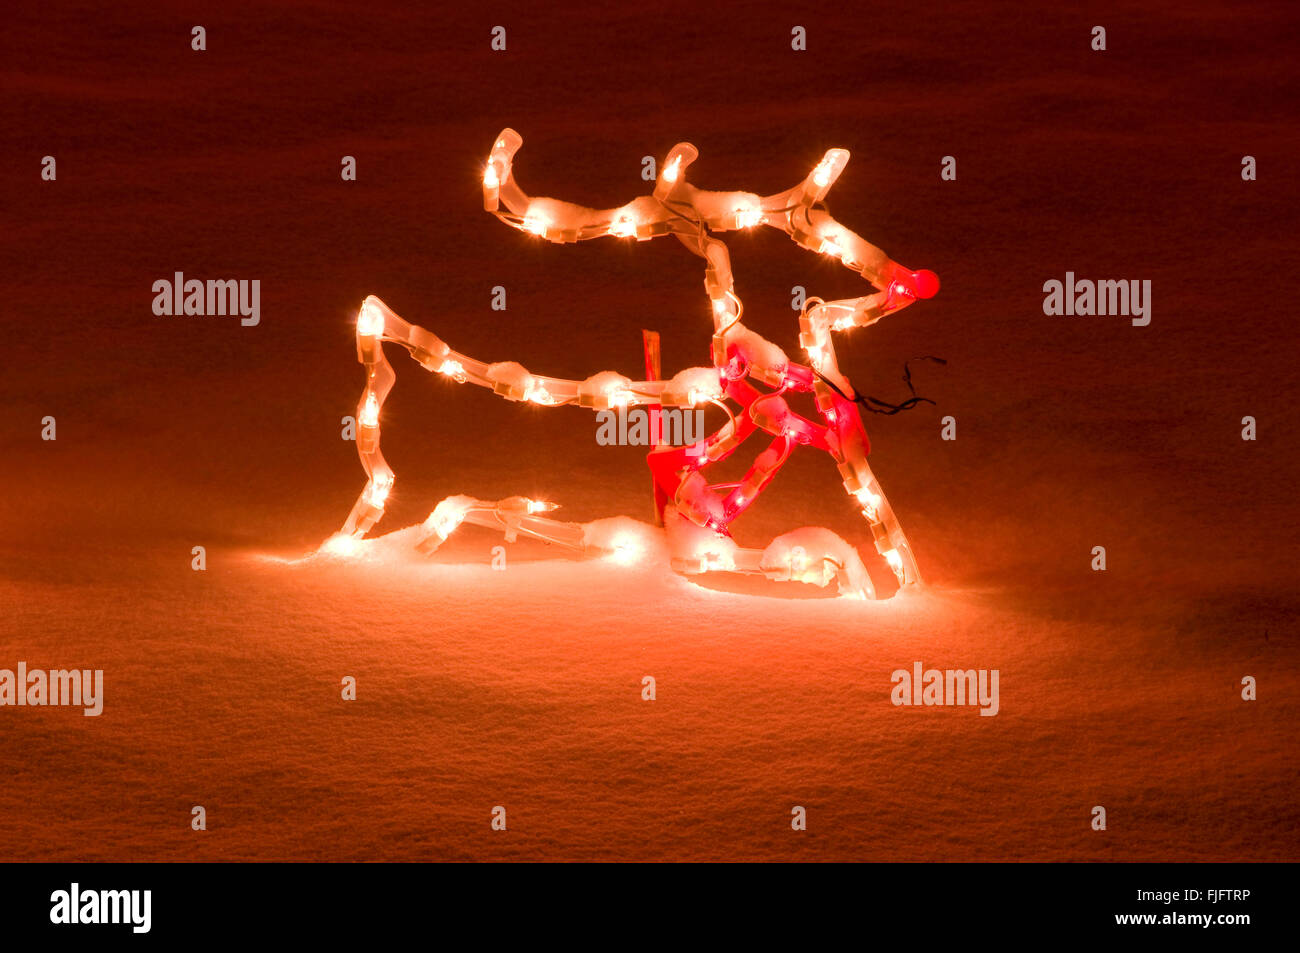 Snow Miracle Stock Photos & Snow Miracle Stock Images - Alamy